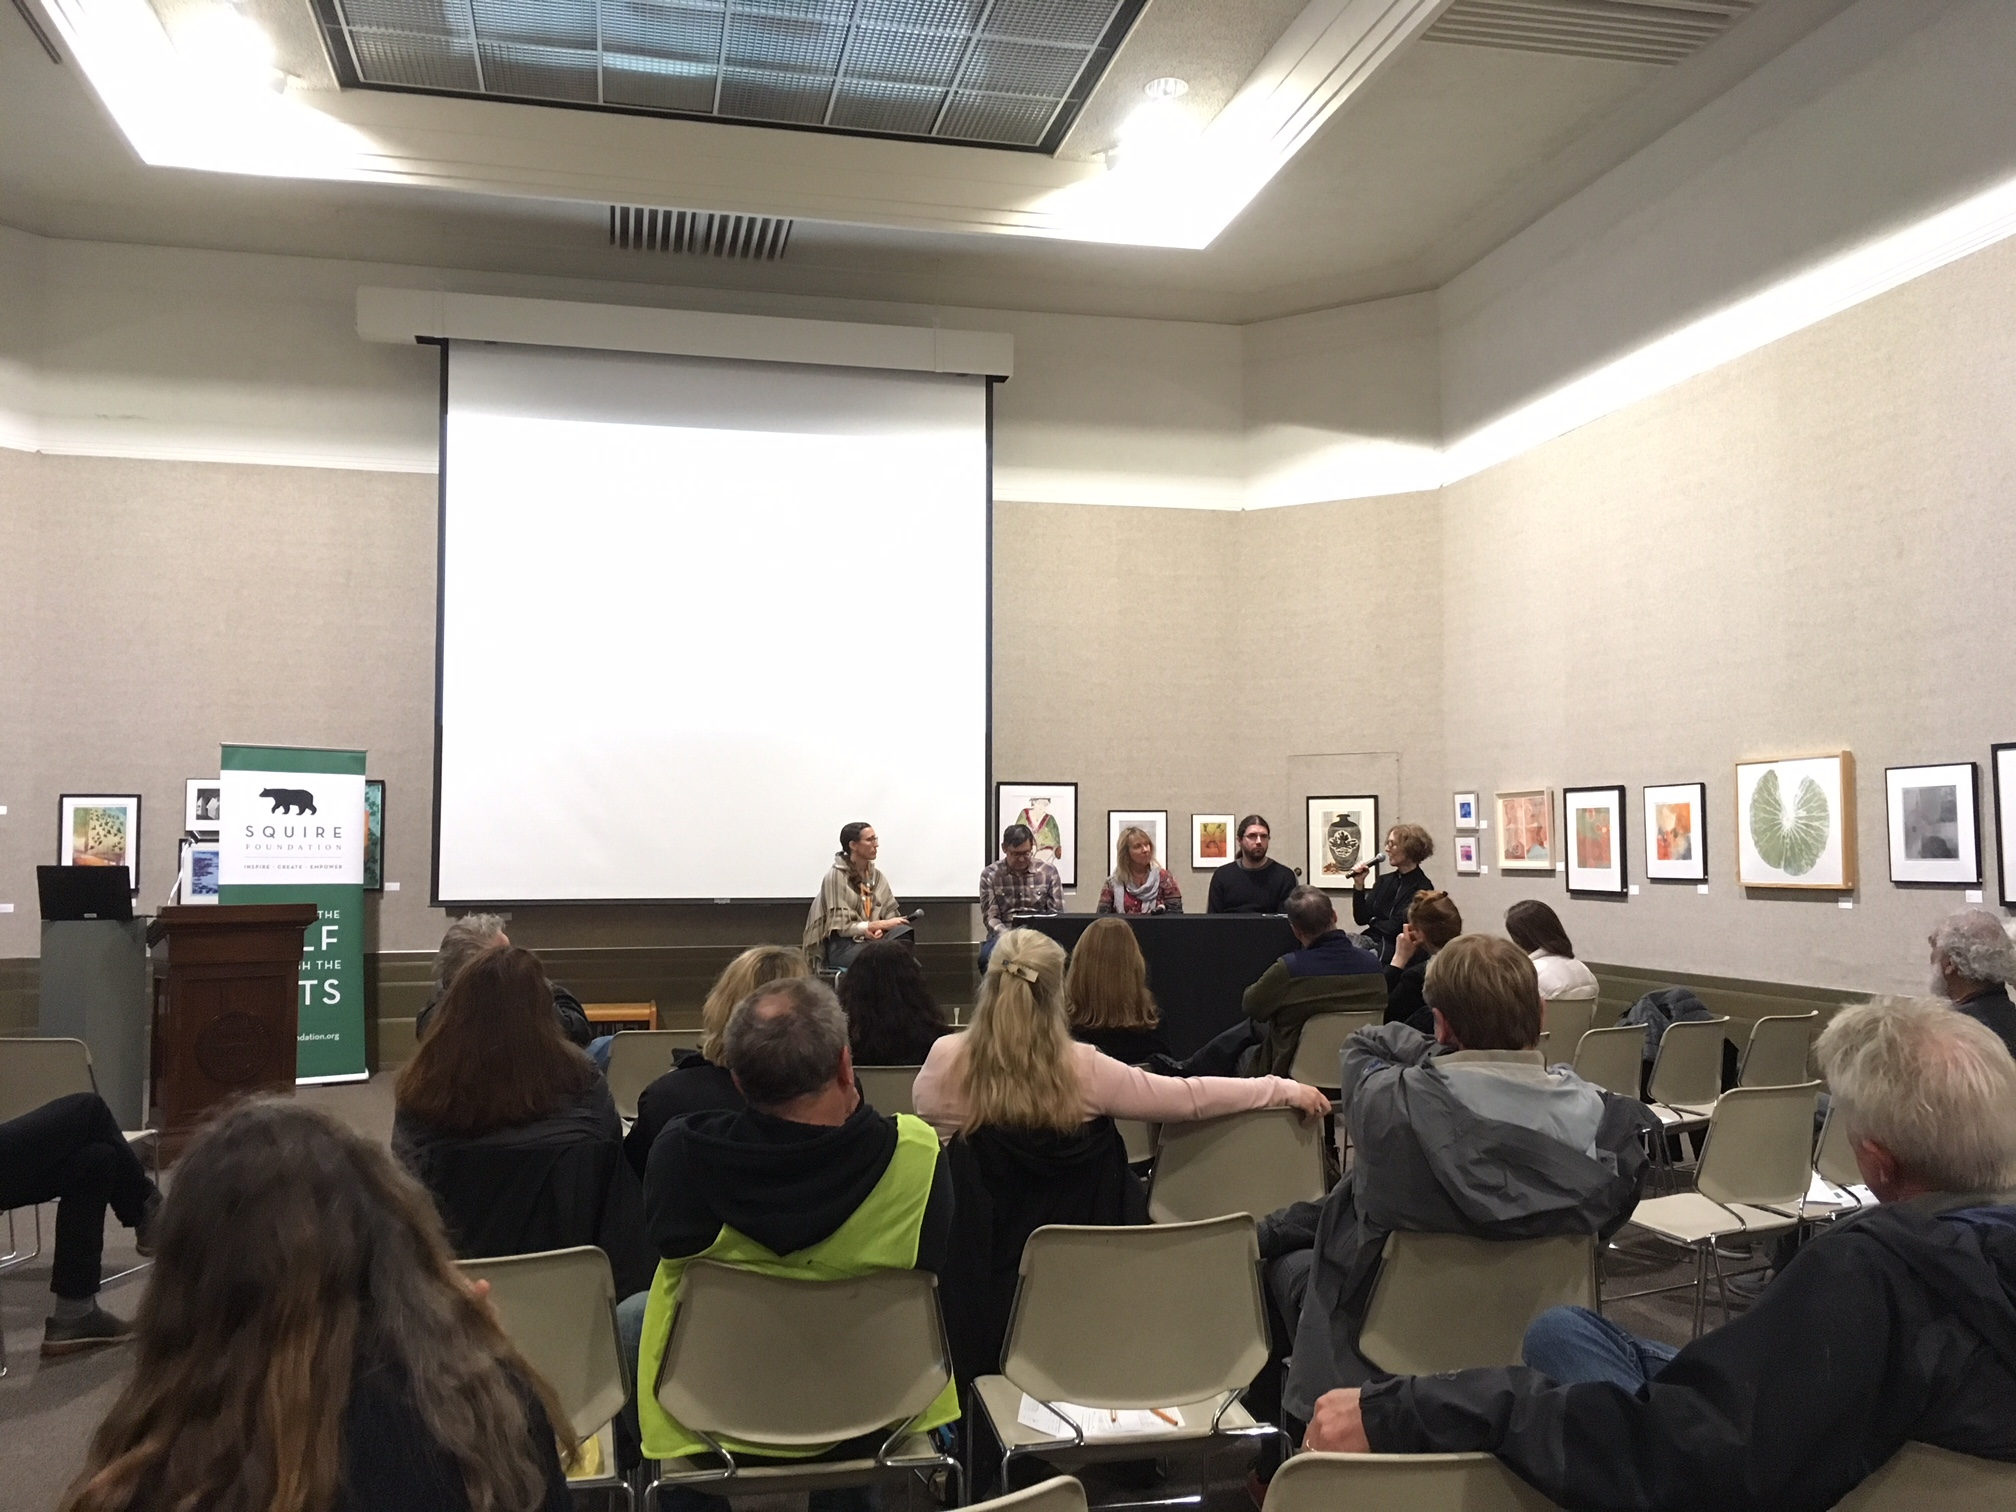 Art in Environmental Activism Discussion Panel, with Brenda Longfellow, Ethan Turpin, Myla Kato, and Tom Pazderka.